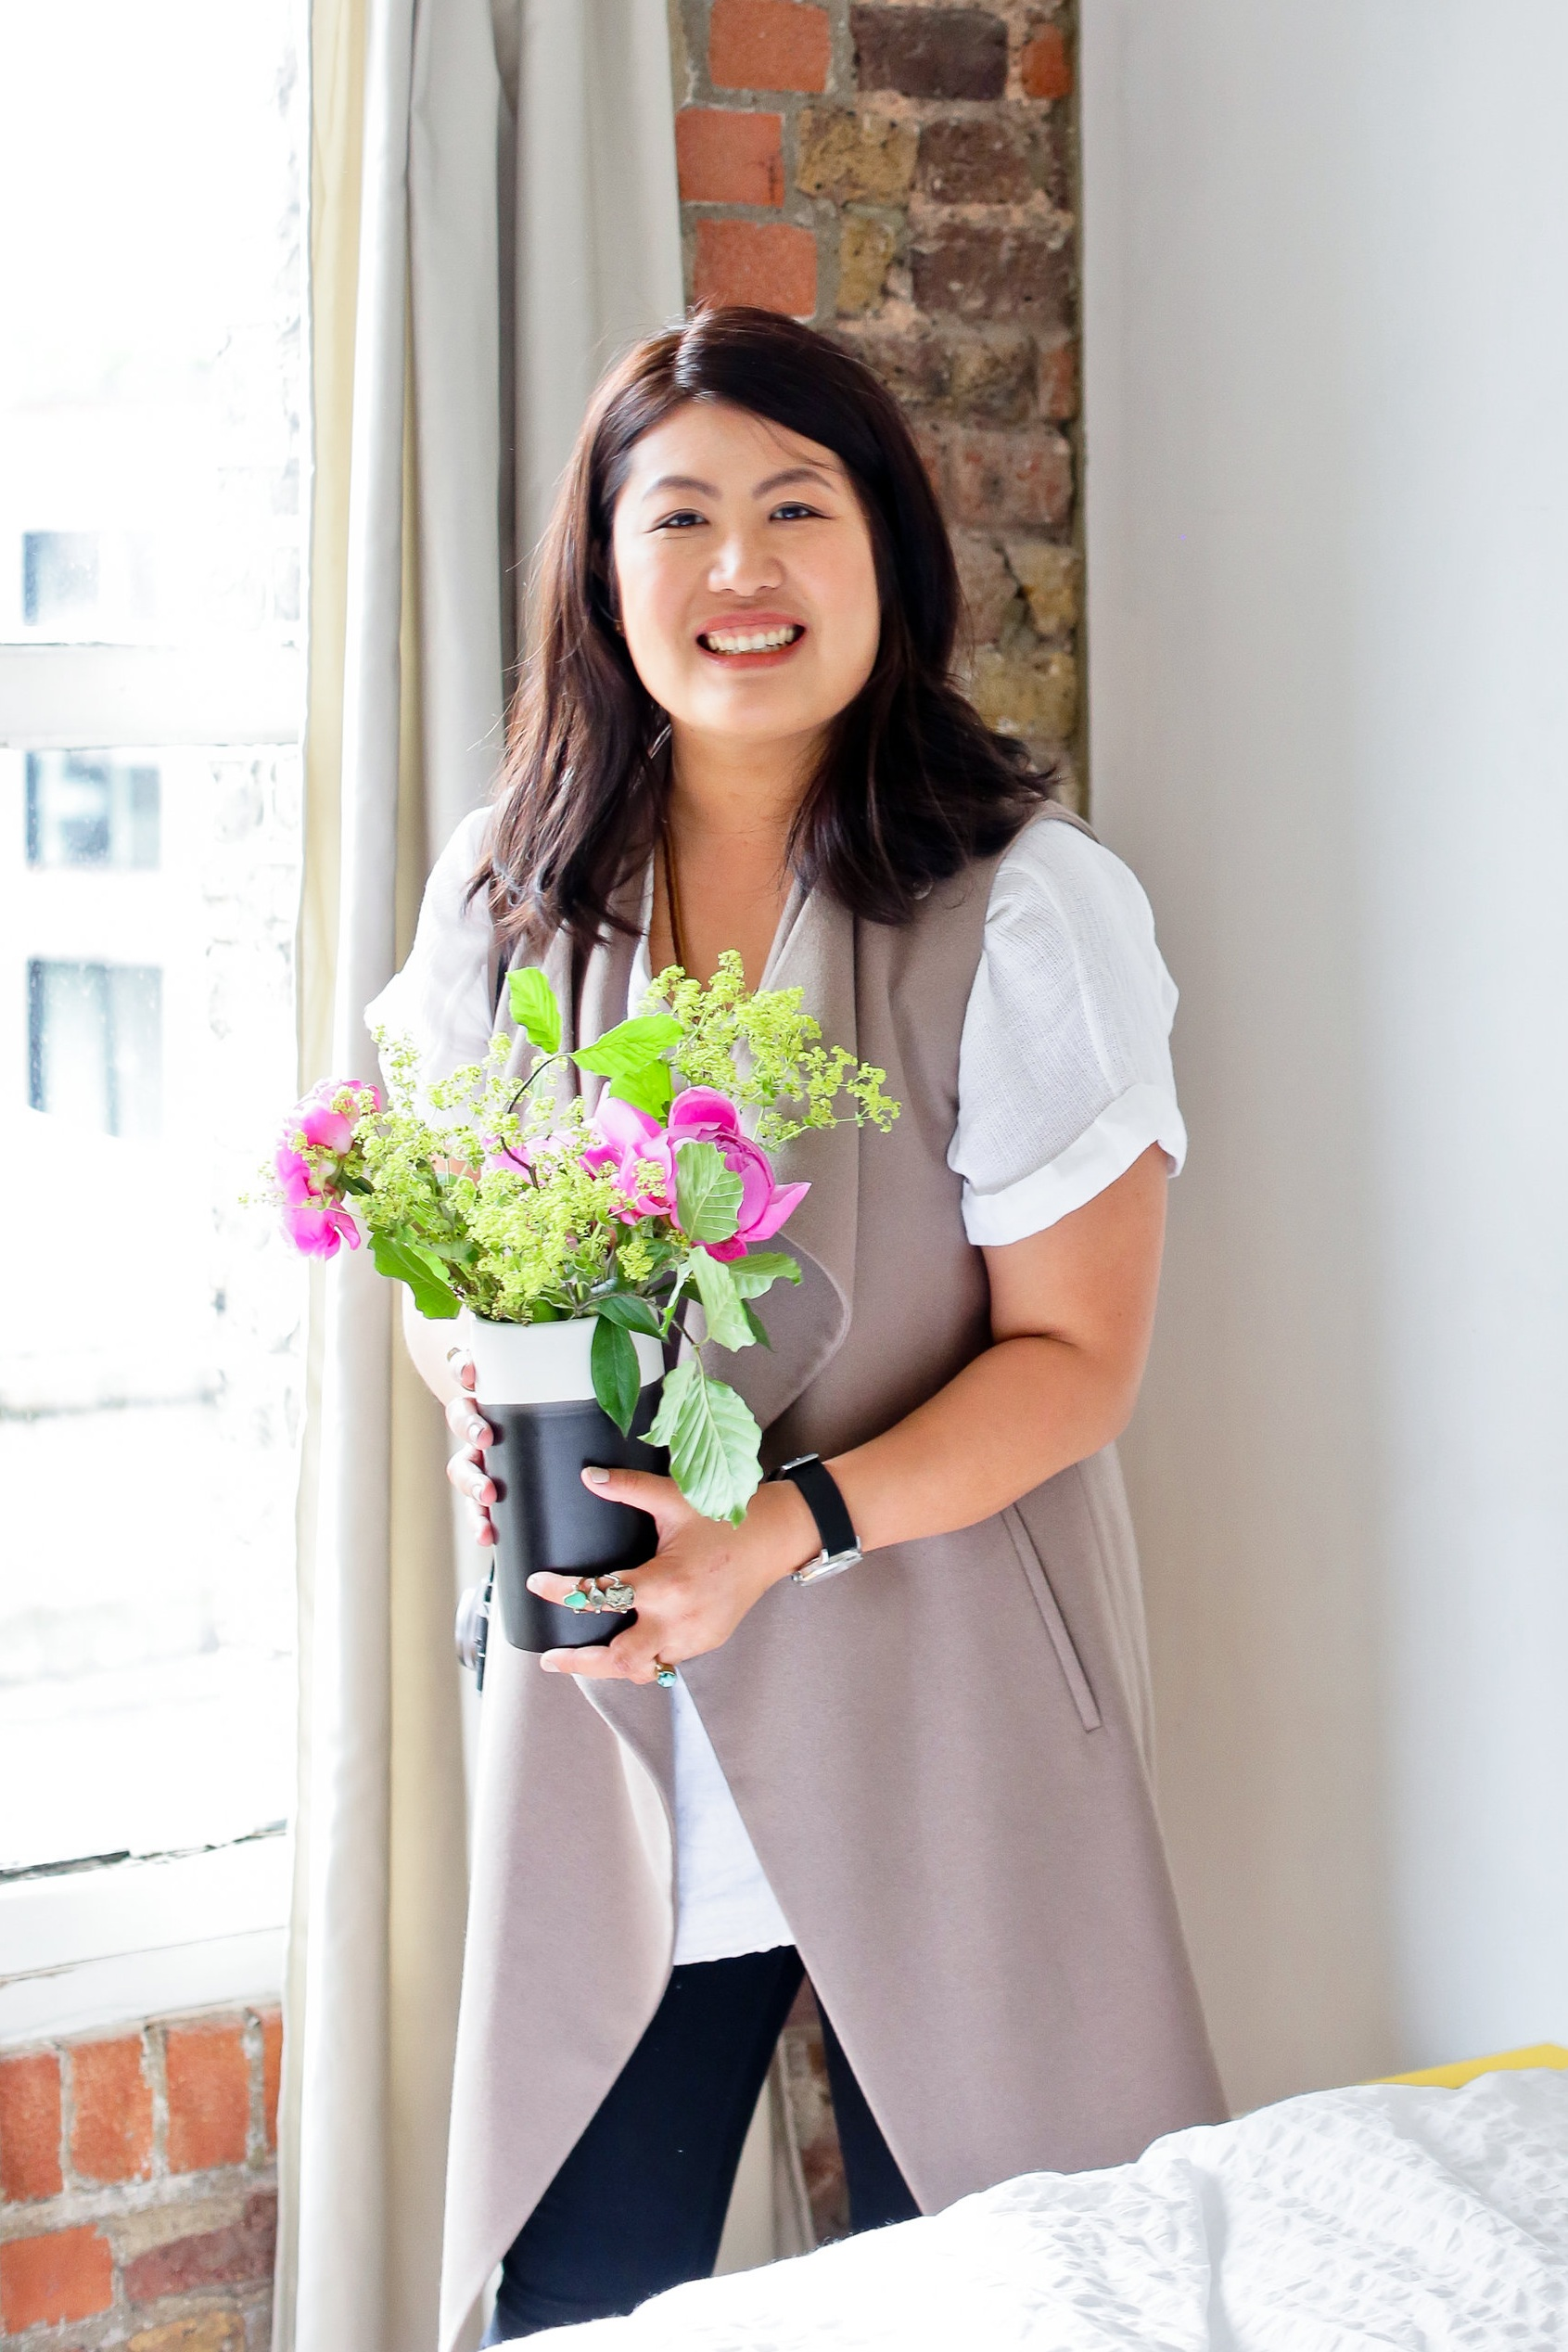 Cindy Lin, founder of Staged4more School of Home Staging